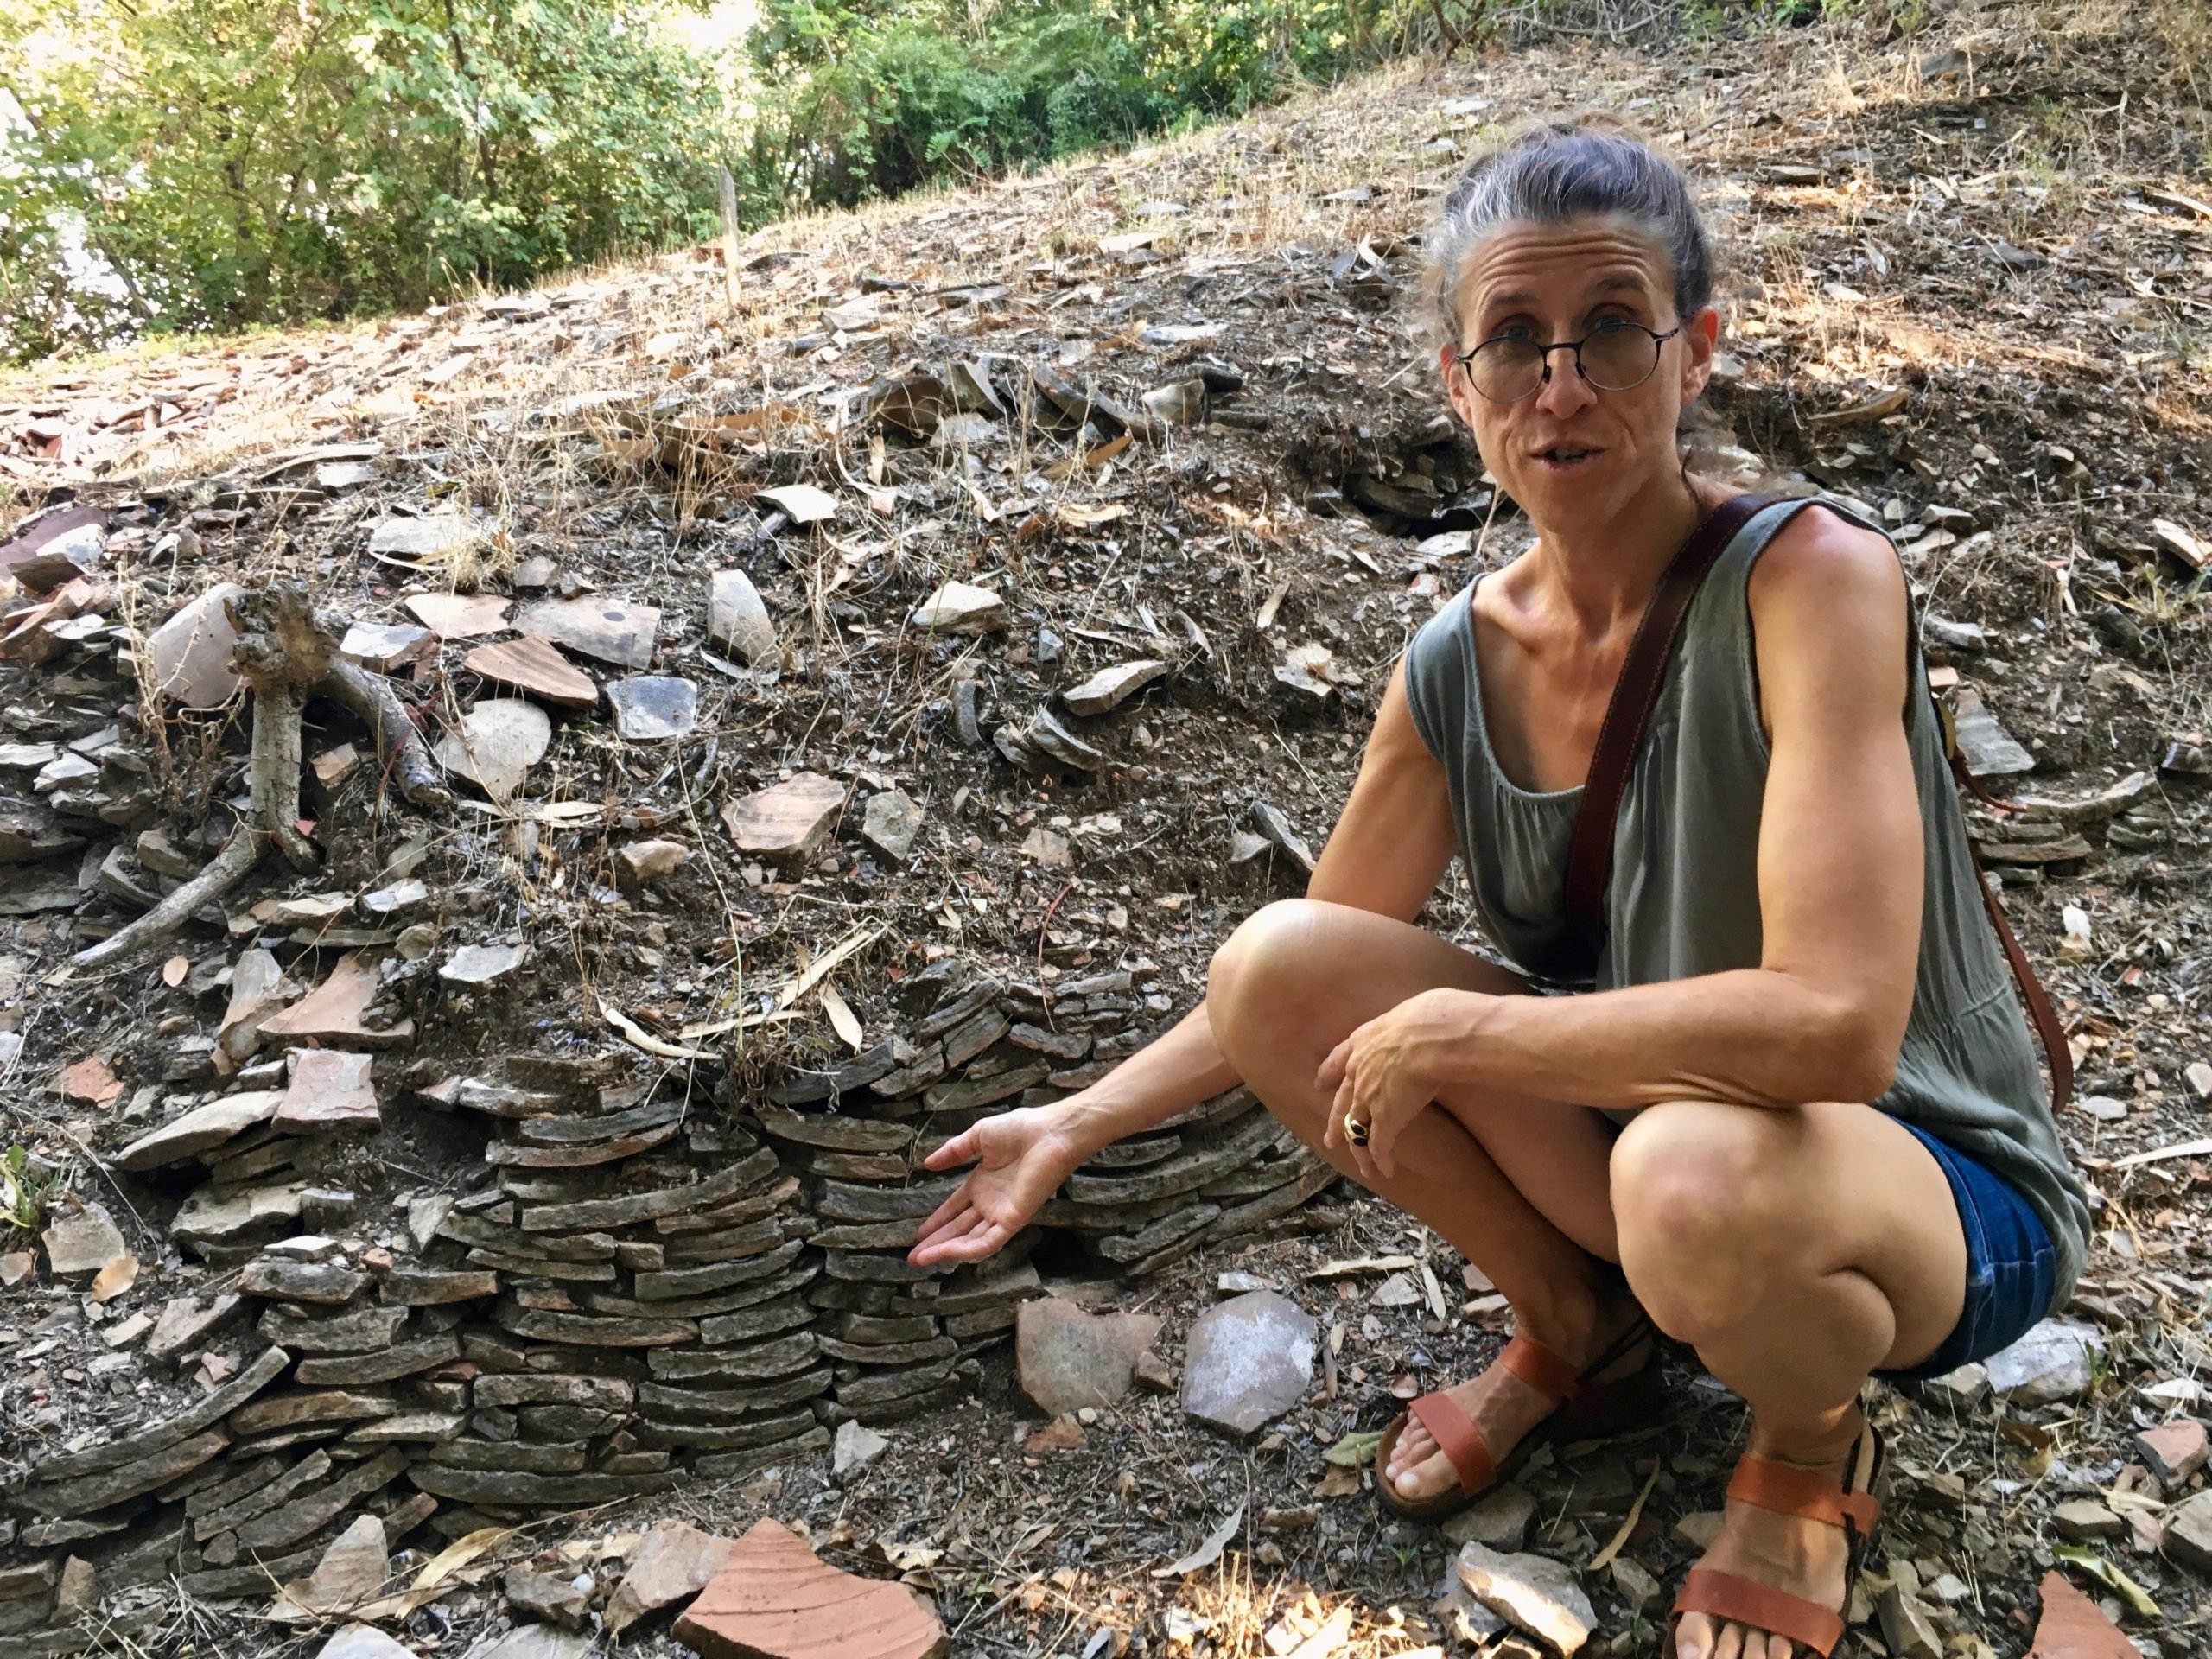 Monte Testaccio Rome Tour Daniella Hunt indicates the tightly packed and pile fragments of amphora along the path up the hill